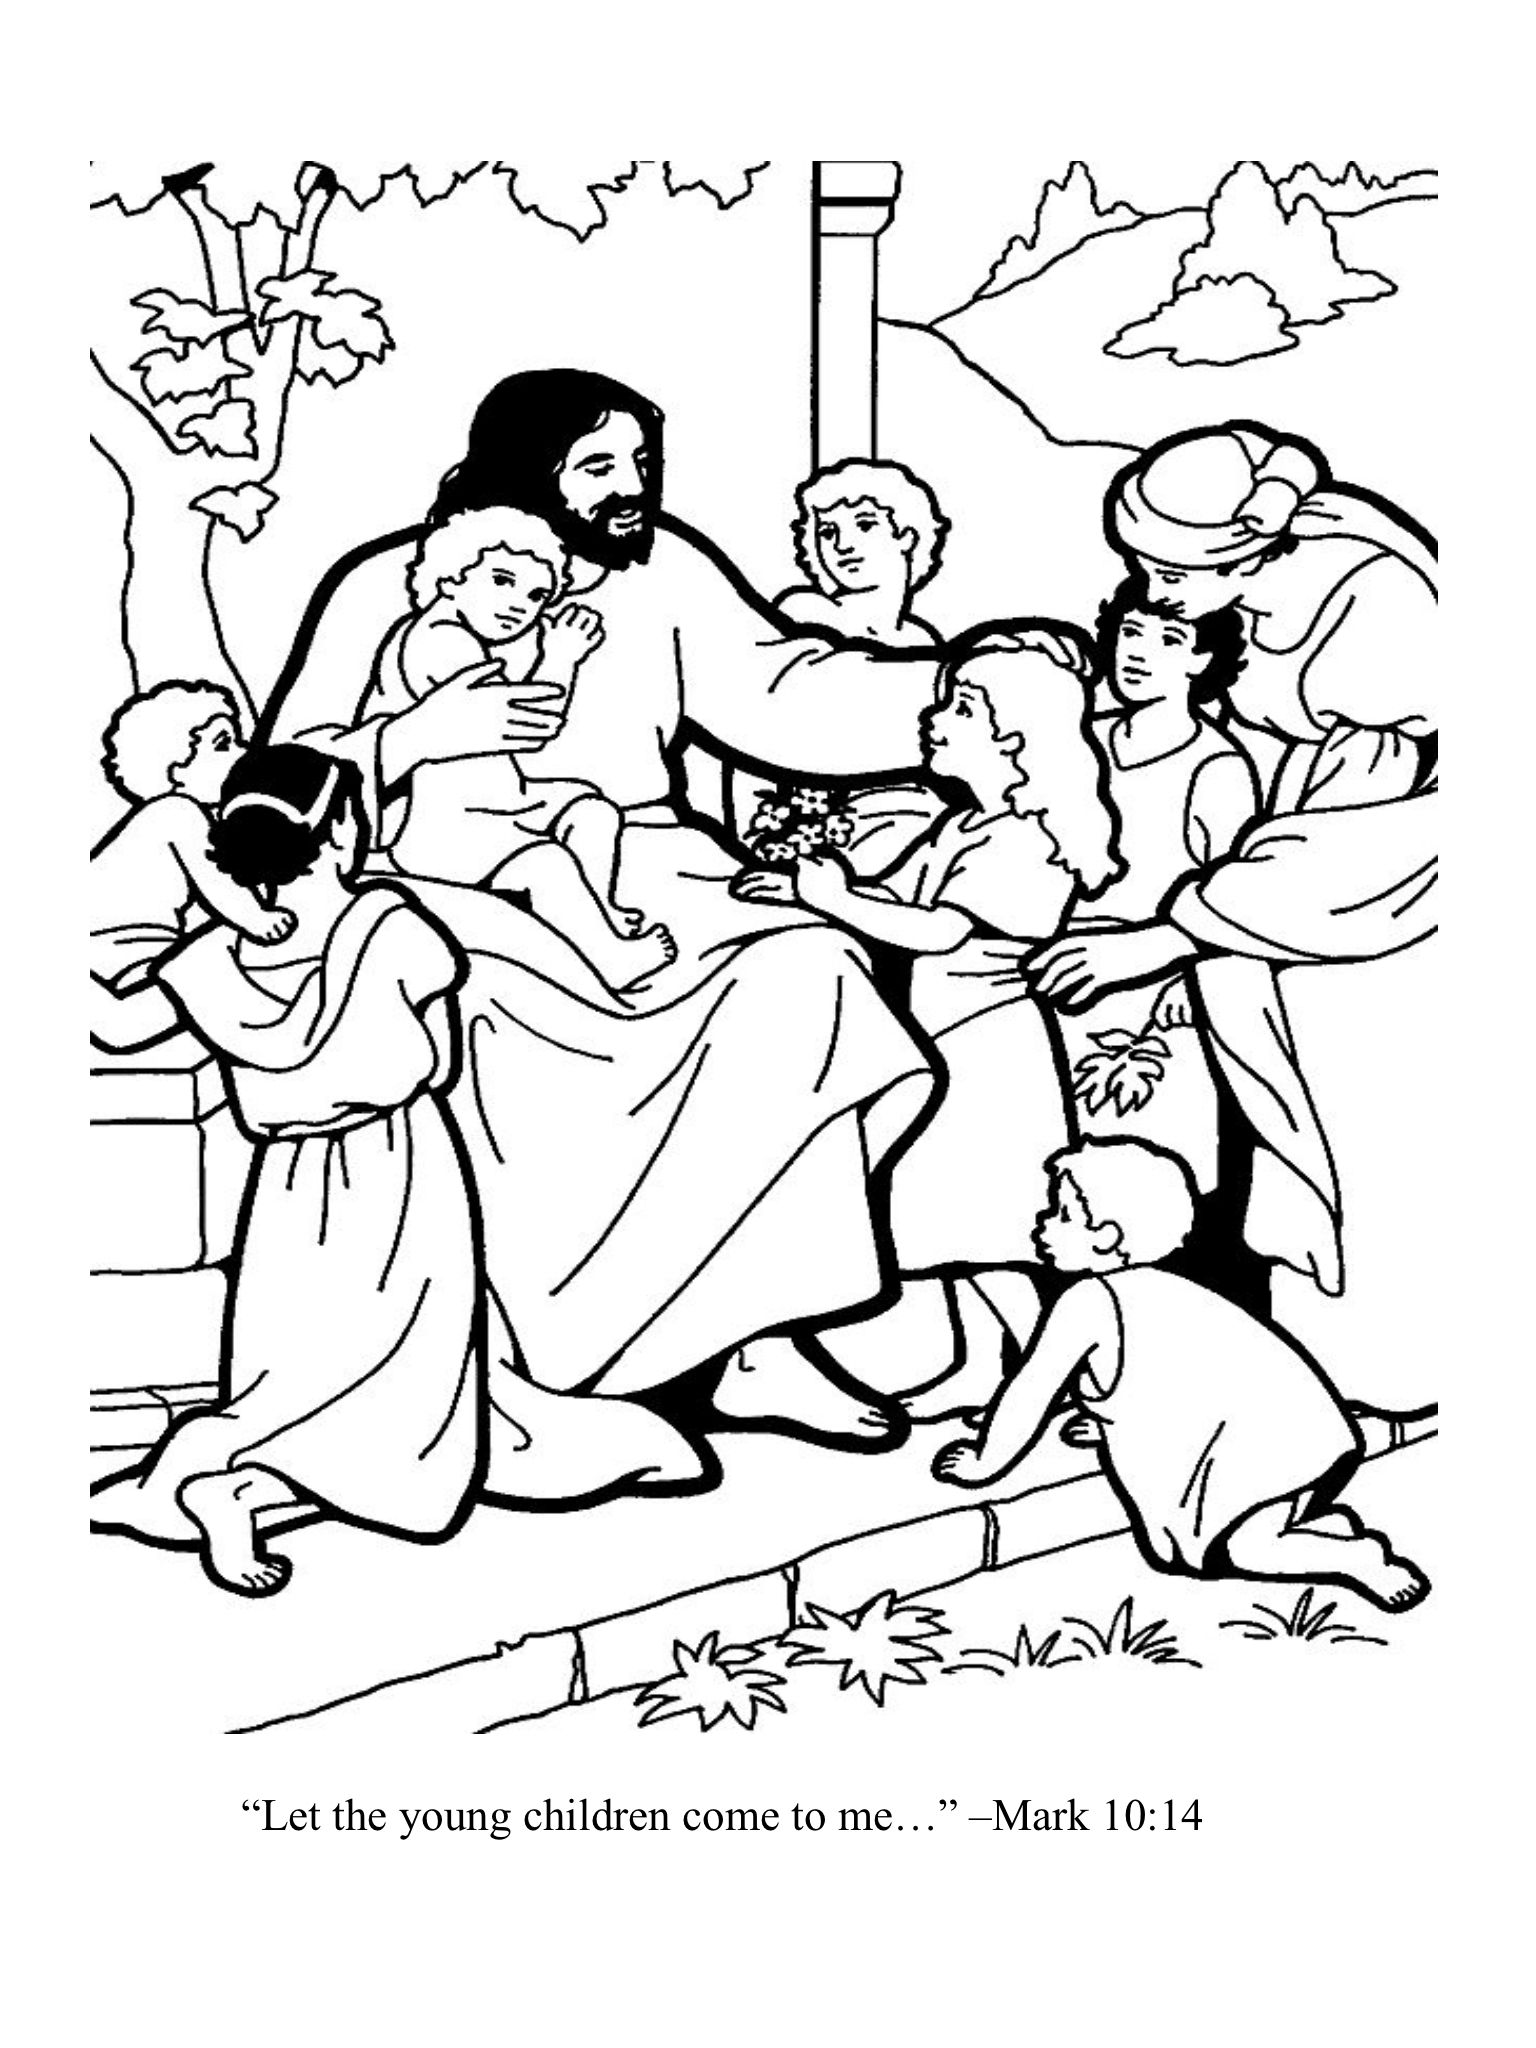 bible coloring pages for preschoolers bible coloring pages teach your kids through coloring preschoolers for pages bible coloring